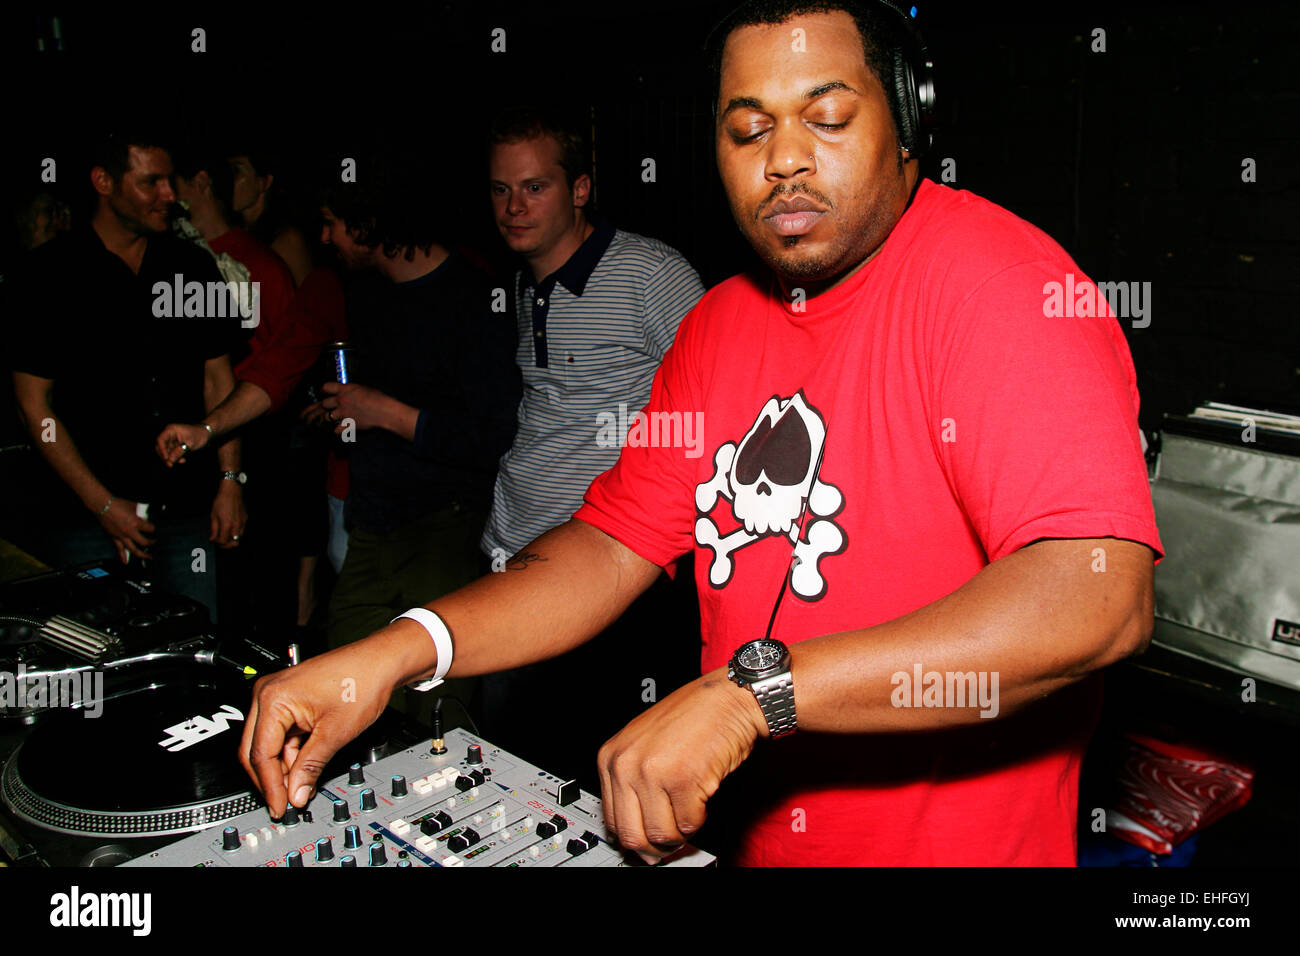 Derrick Carter DJing in The Key at the TDK Cross Central Festival London. - Stock Image